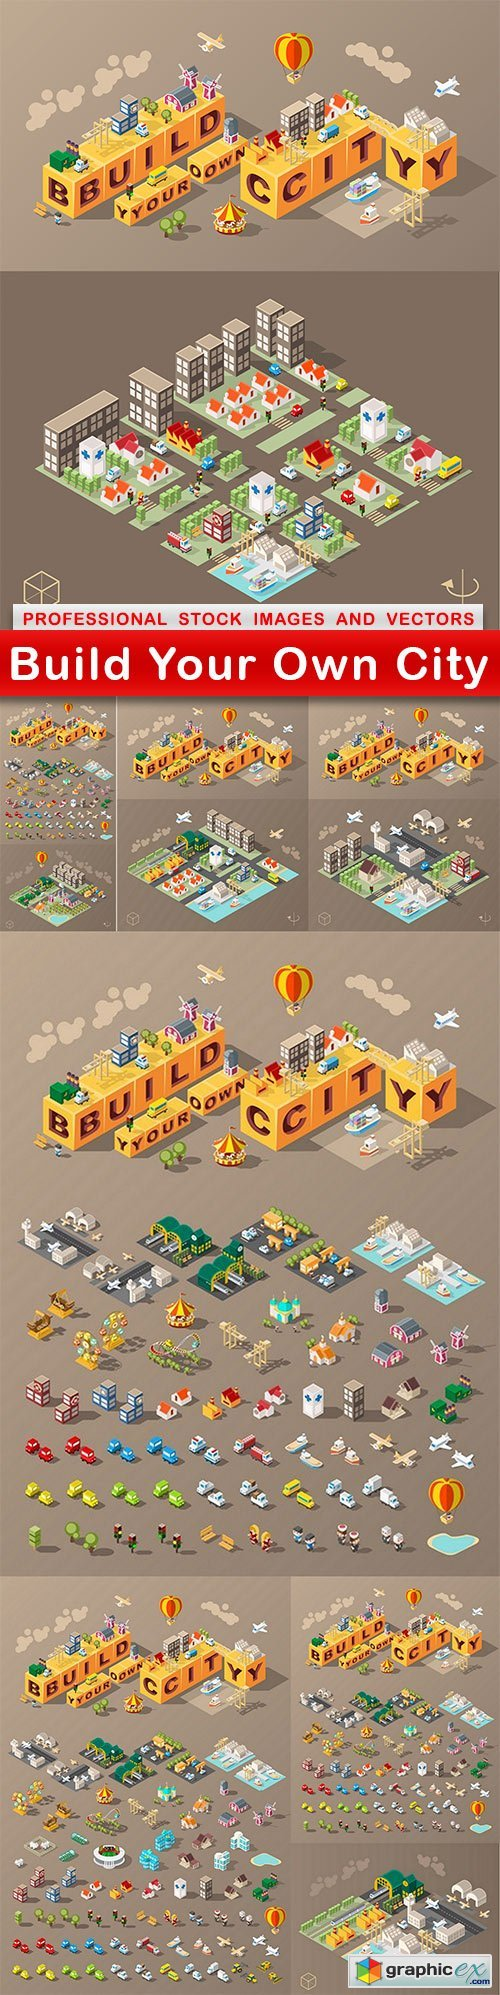 Build Your Own City - 7 EPS